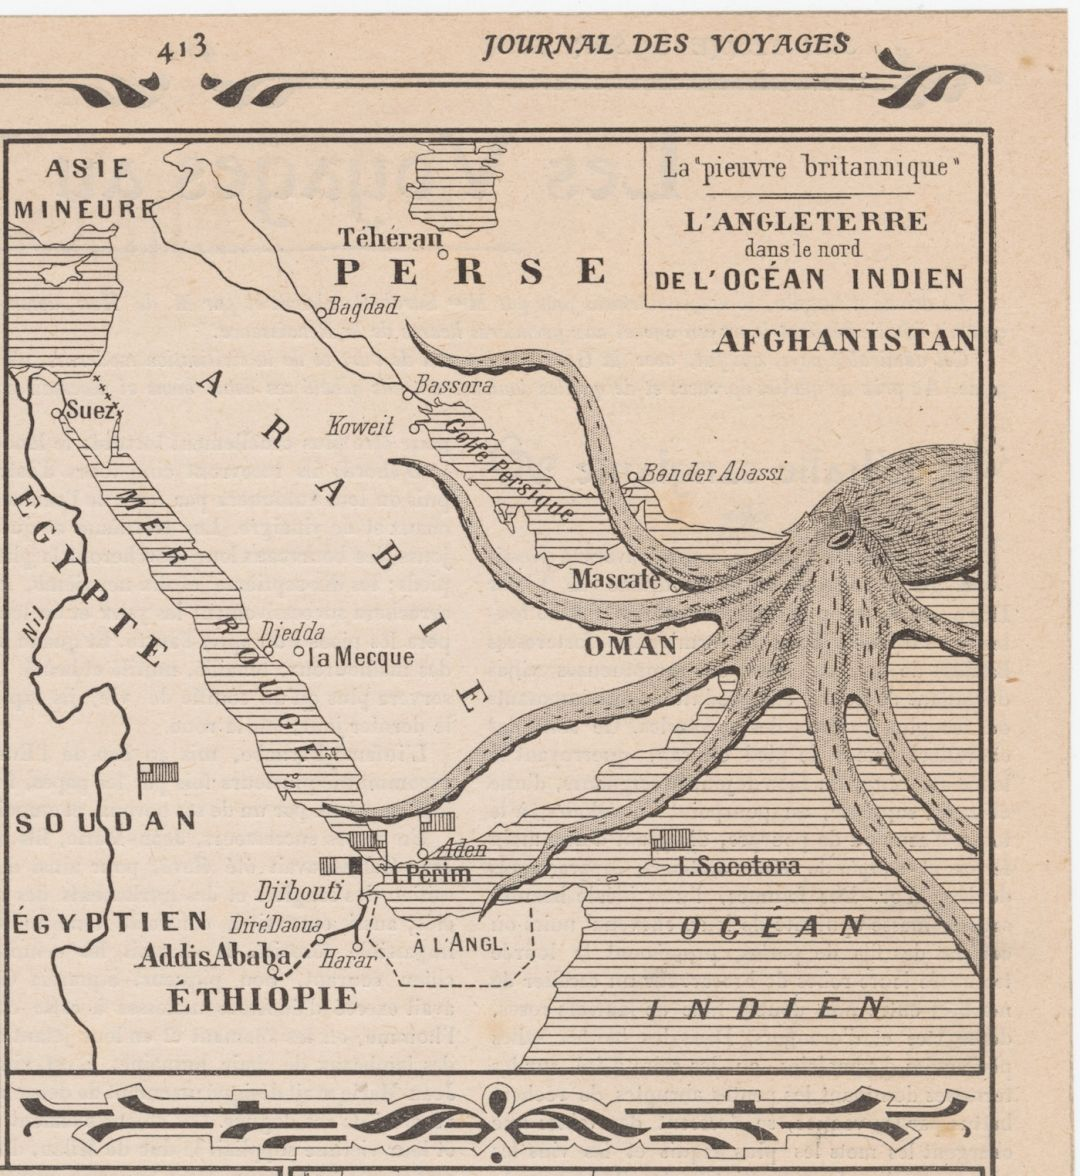 The Octopus, a Motif of Evil in Historical Propaganda Maps